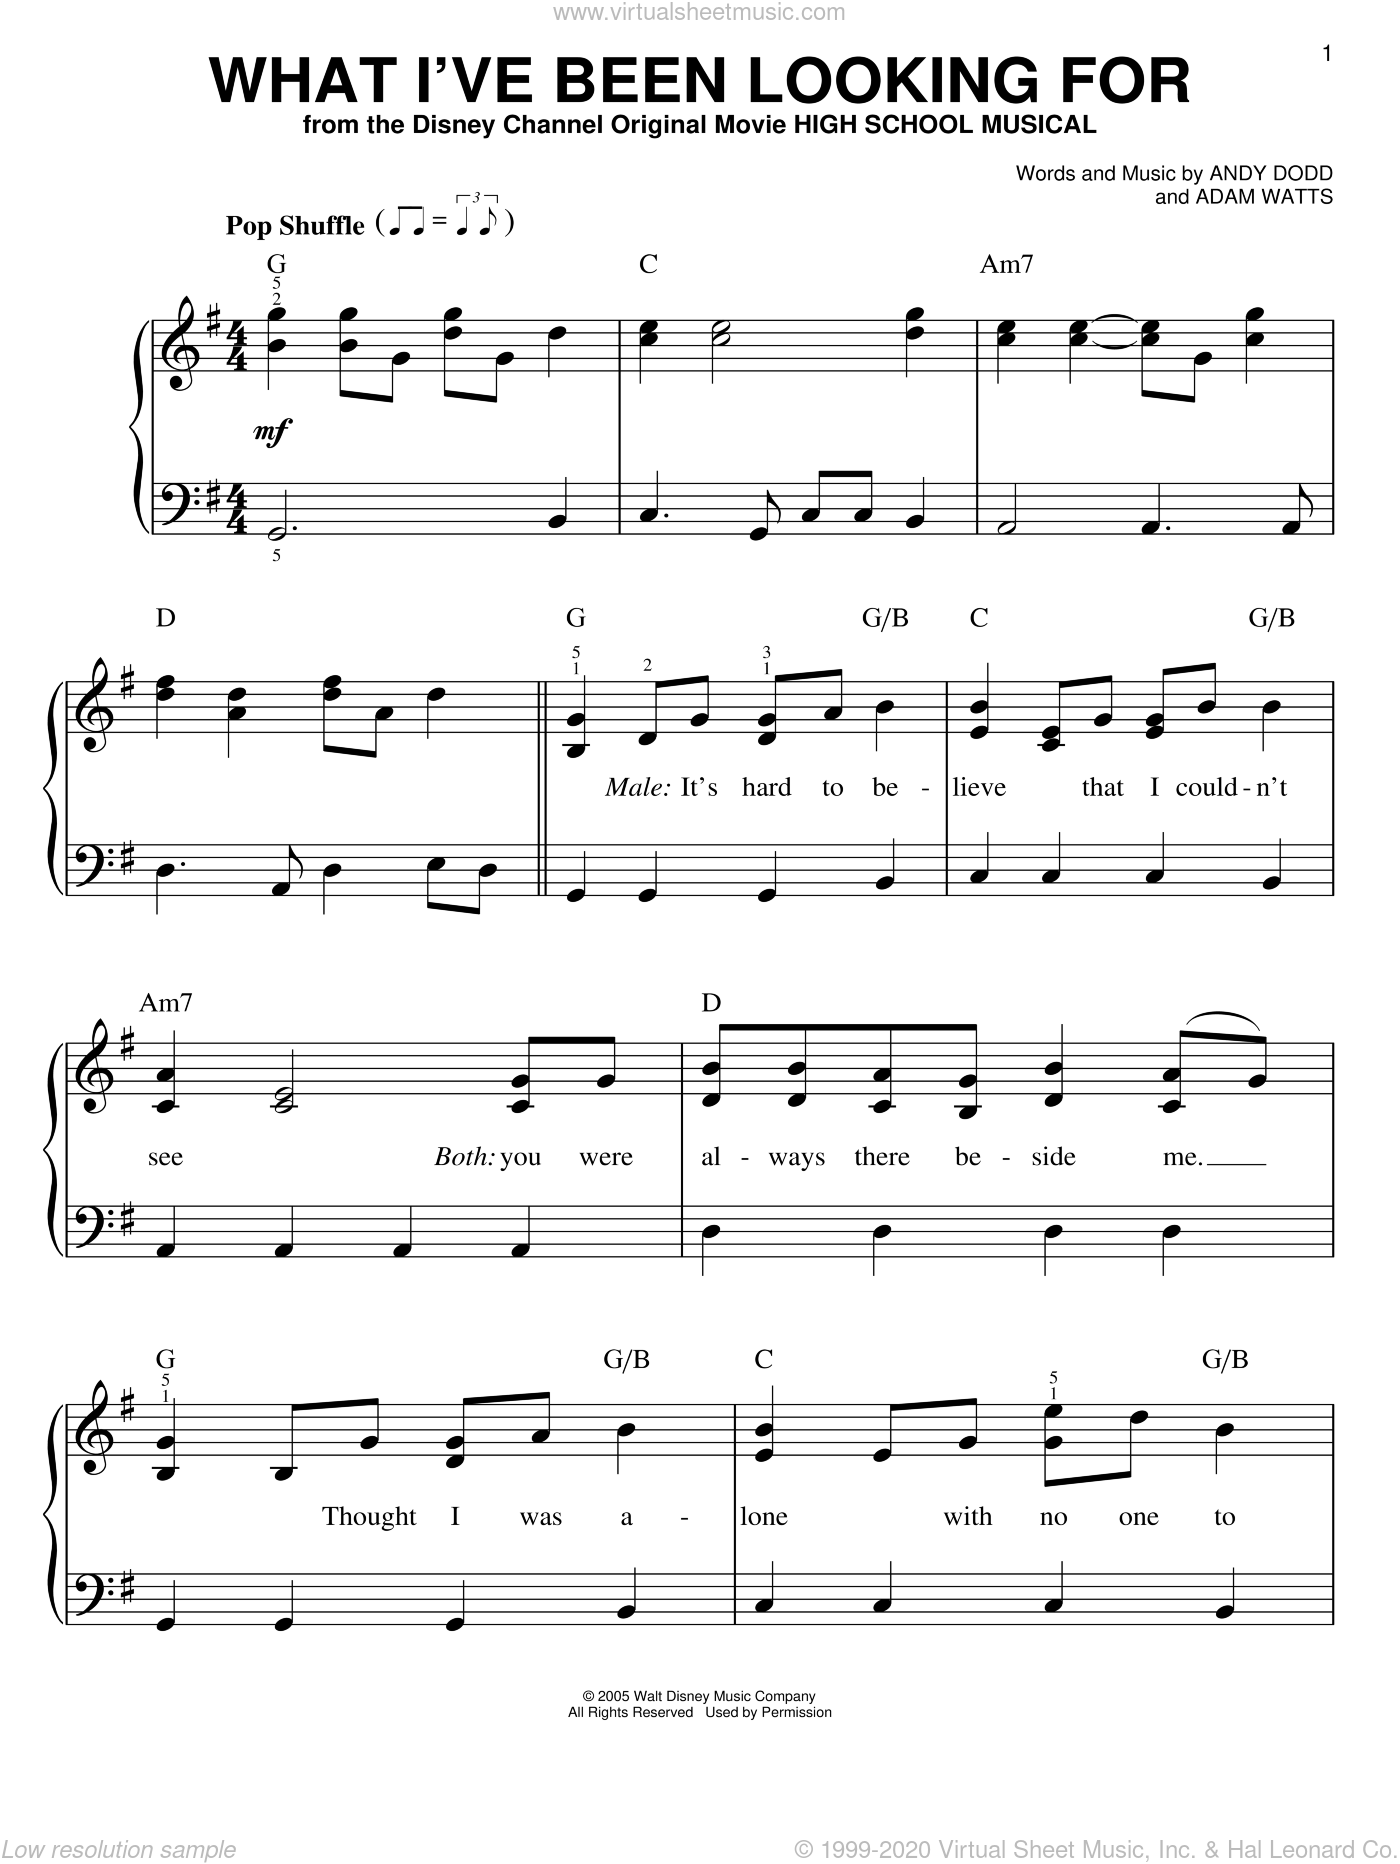 What I've Been Looking For sheet music for piano solo by High School Musical, Adam Watts and Andy Dodd, easy skill level